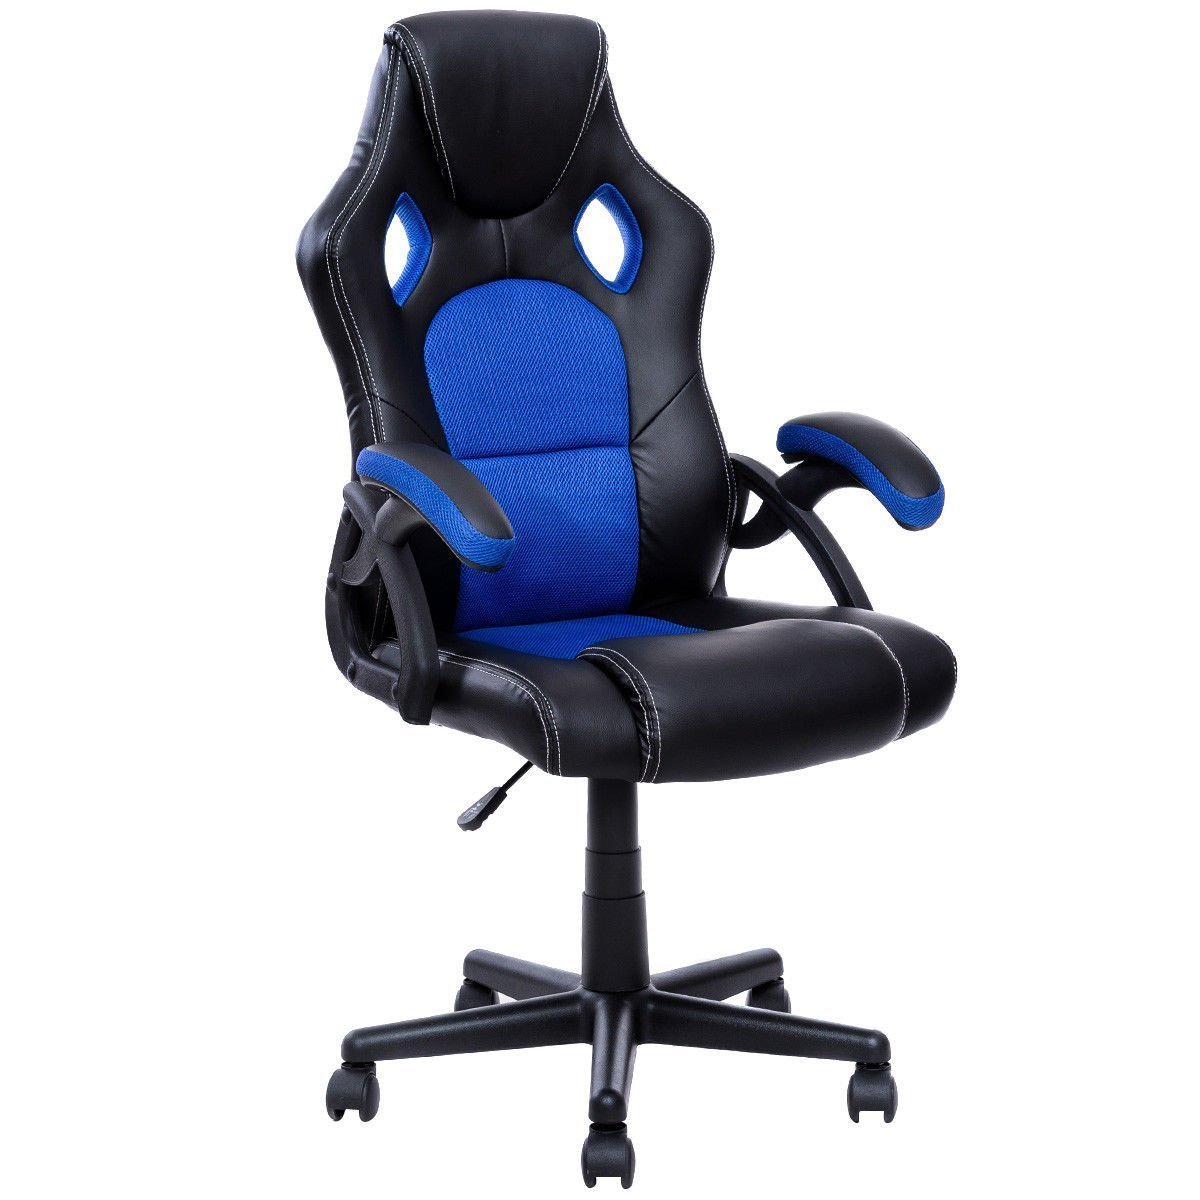 Racing Seat Office Chair Giantex Pu Leather Executive Bucket Seat Racing Style